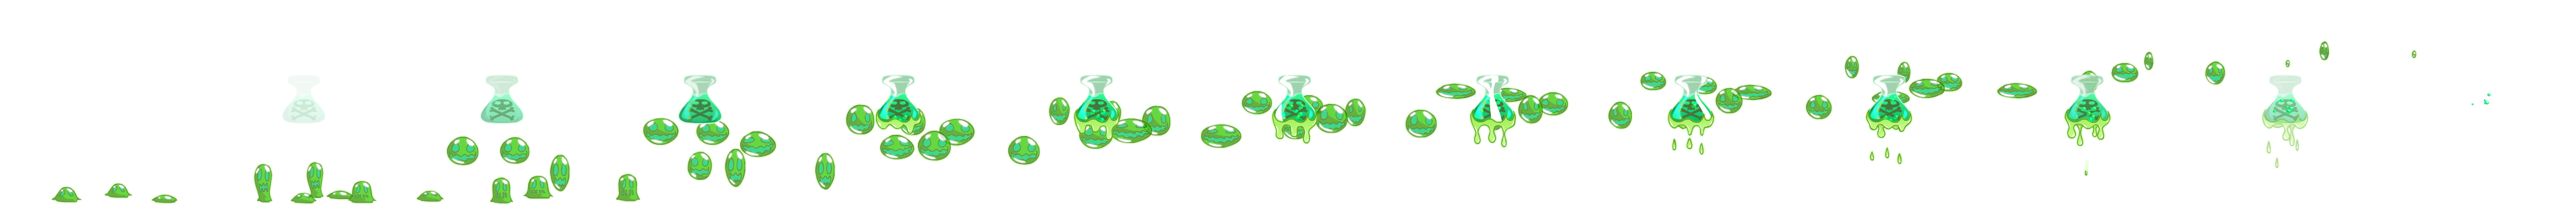 http://images.neopets.com/dome/statuses/poisoned-13-319kb.png